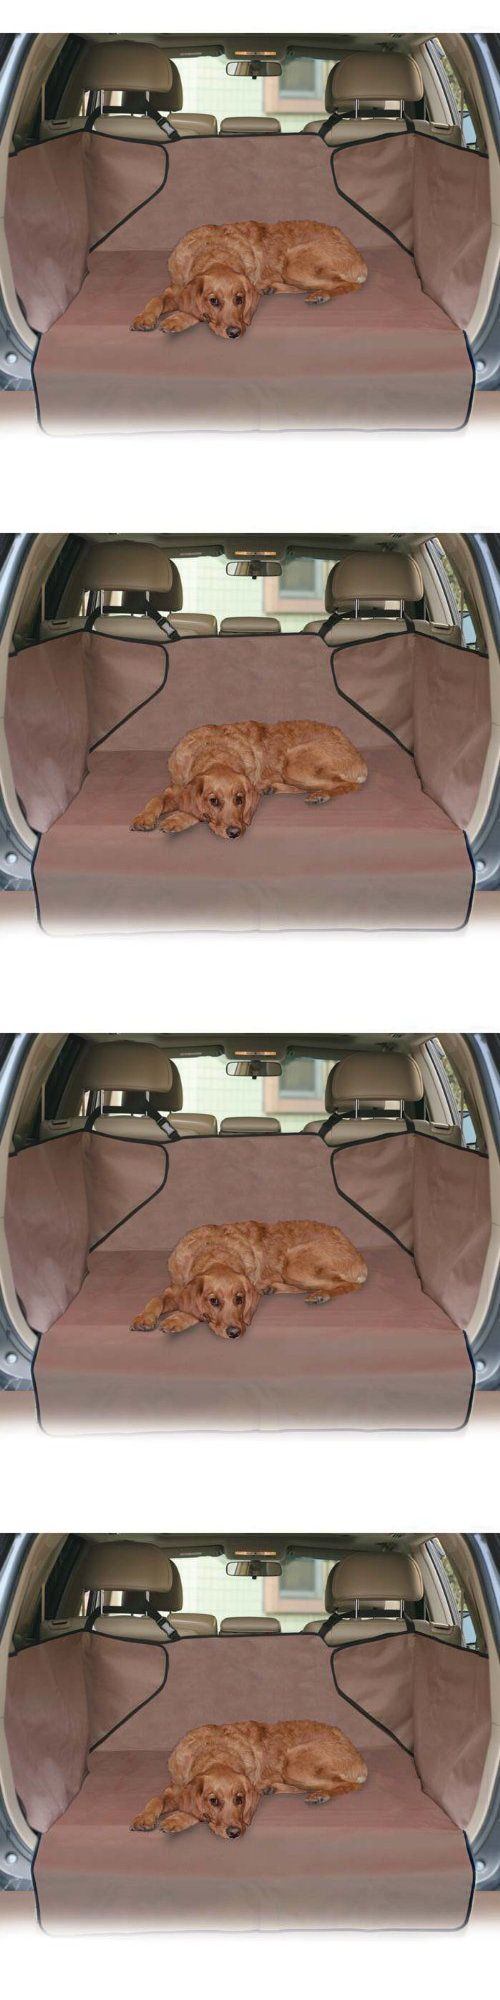 Car Seat Covers 117426: Waterproof Car Seat Cover Protector Pet Dog Cargo Auto Van Suv Quilted Liner New BUY IT NOW ONLY: $40.54